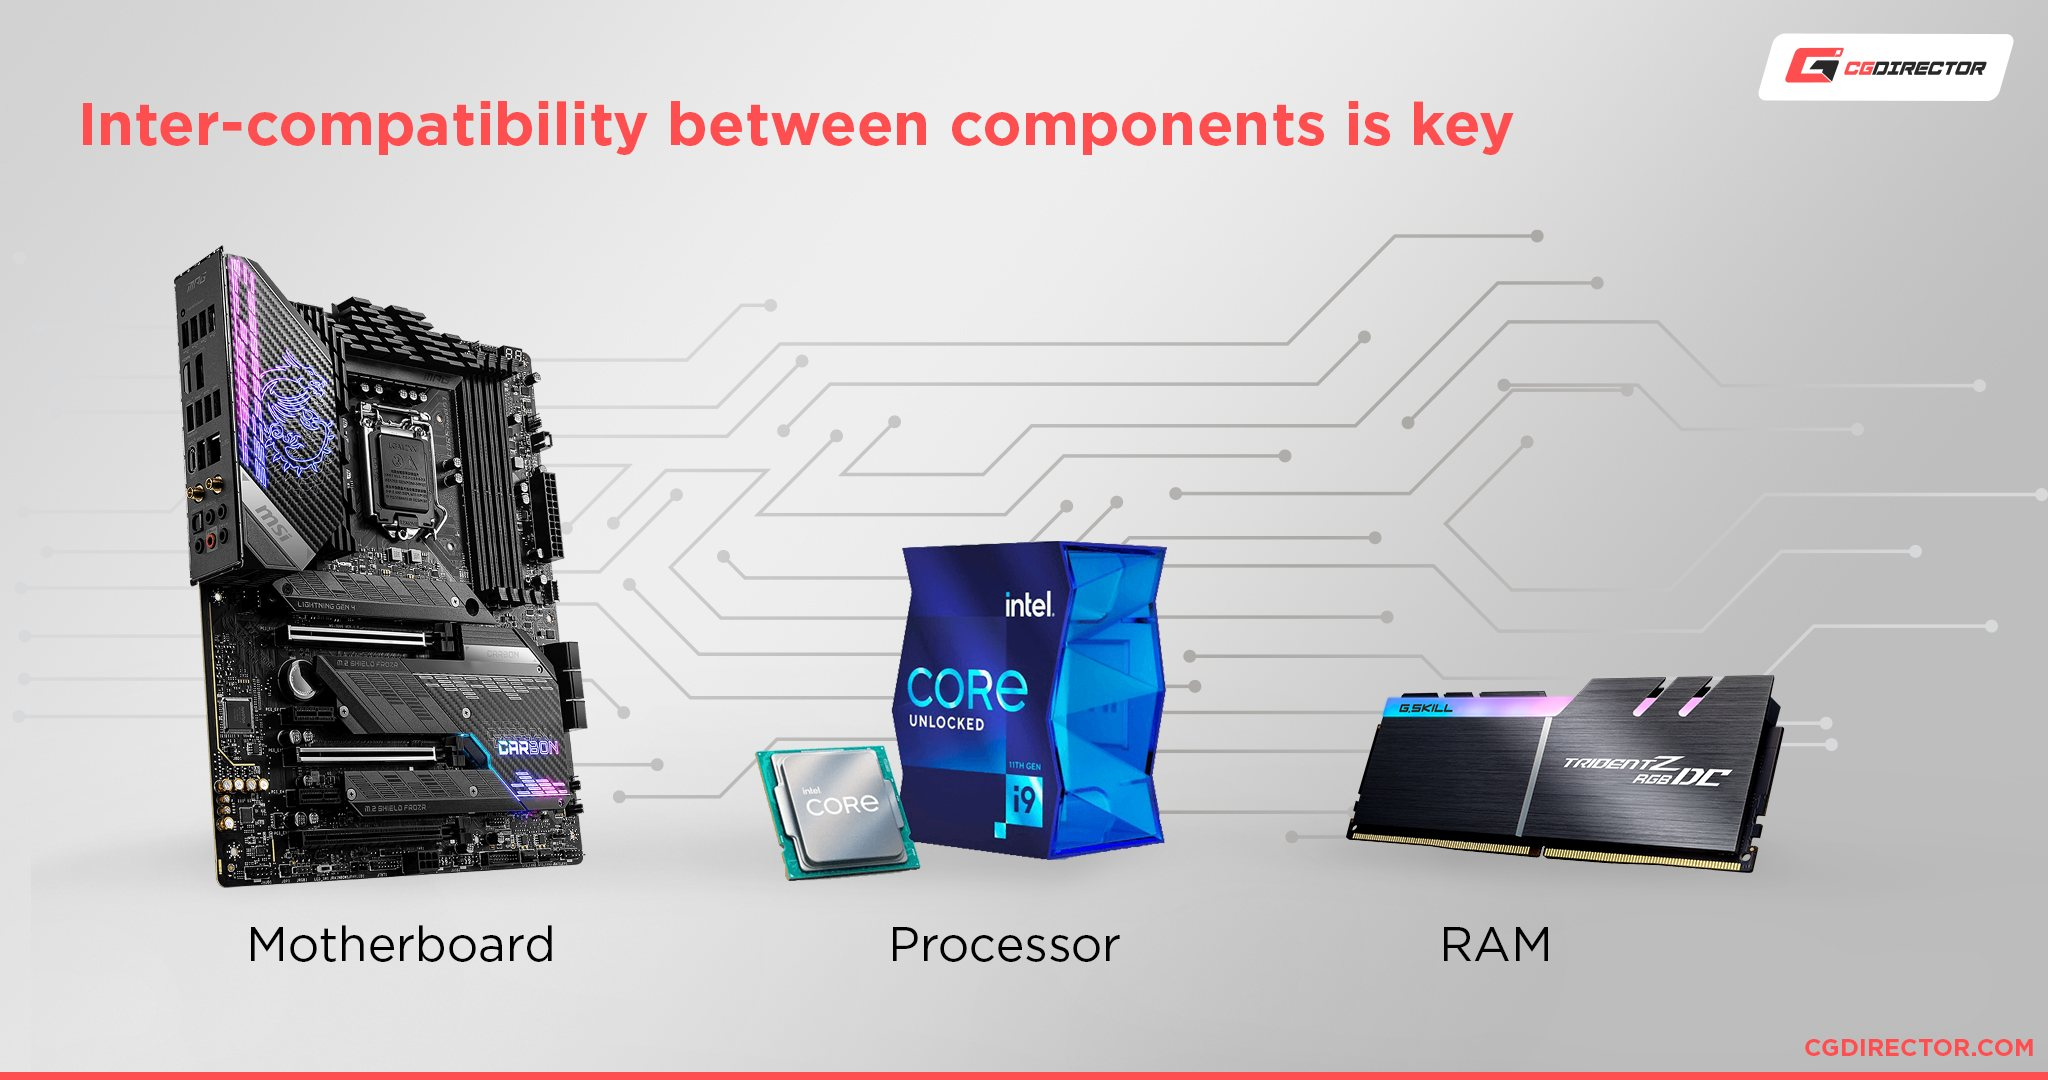 Intercompatibility between components is key